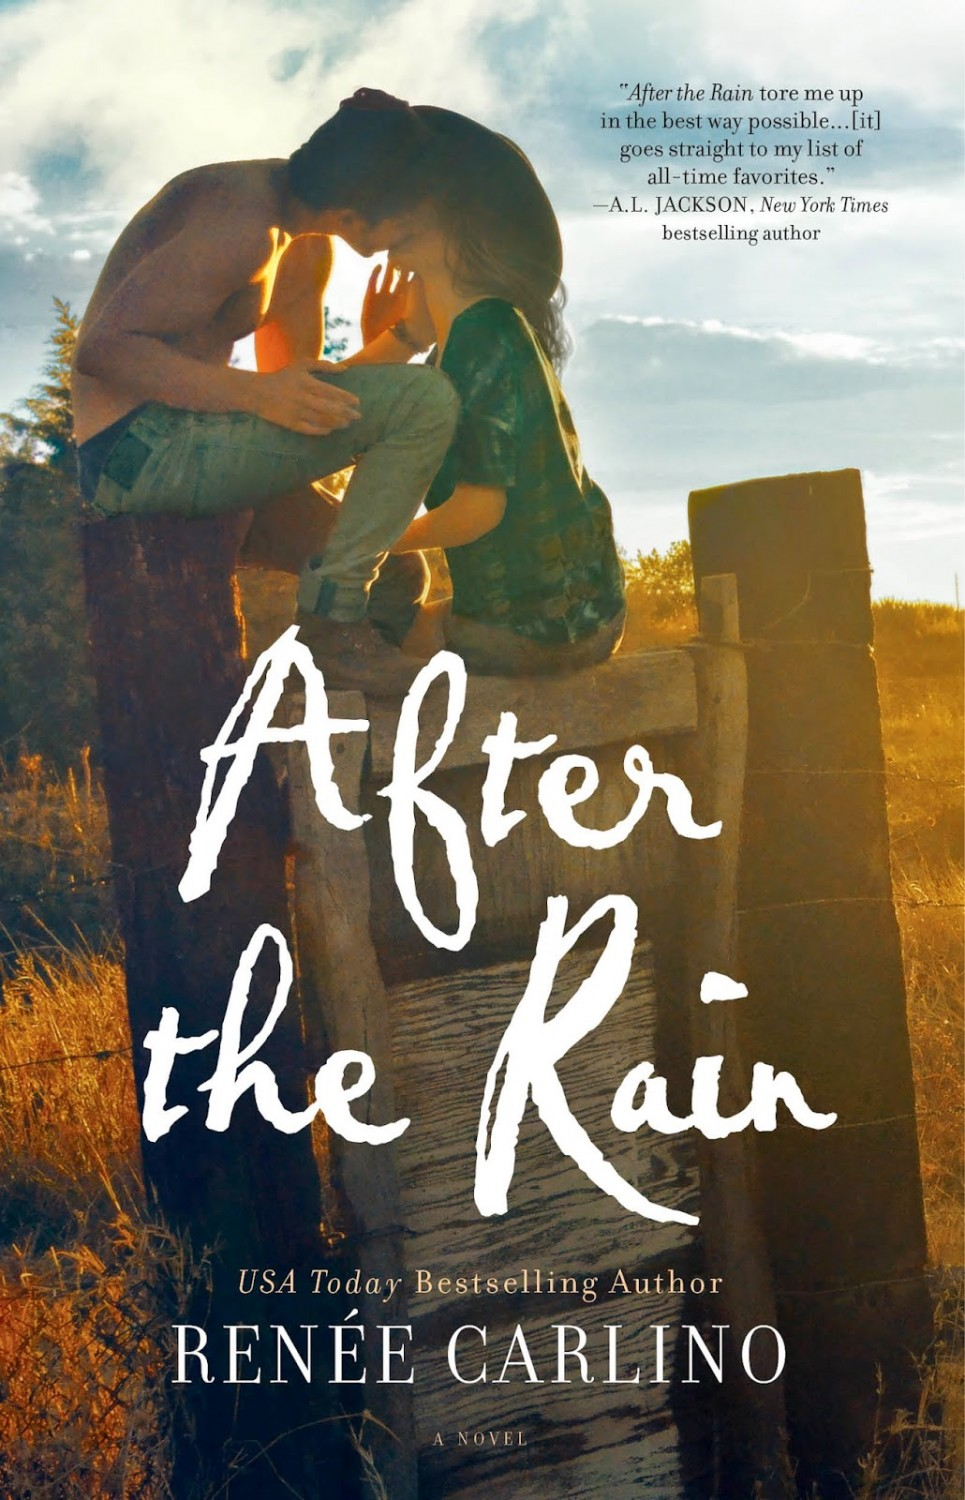 After The Rain-w-quote FINAL